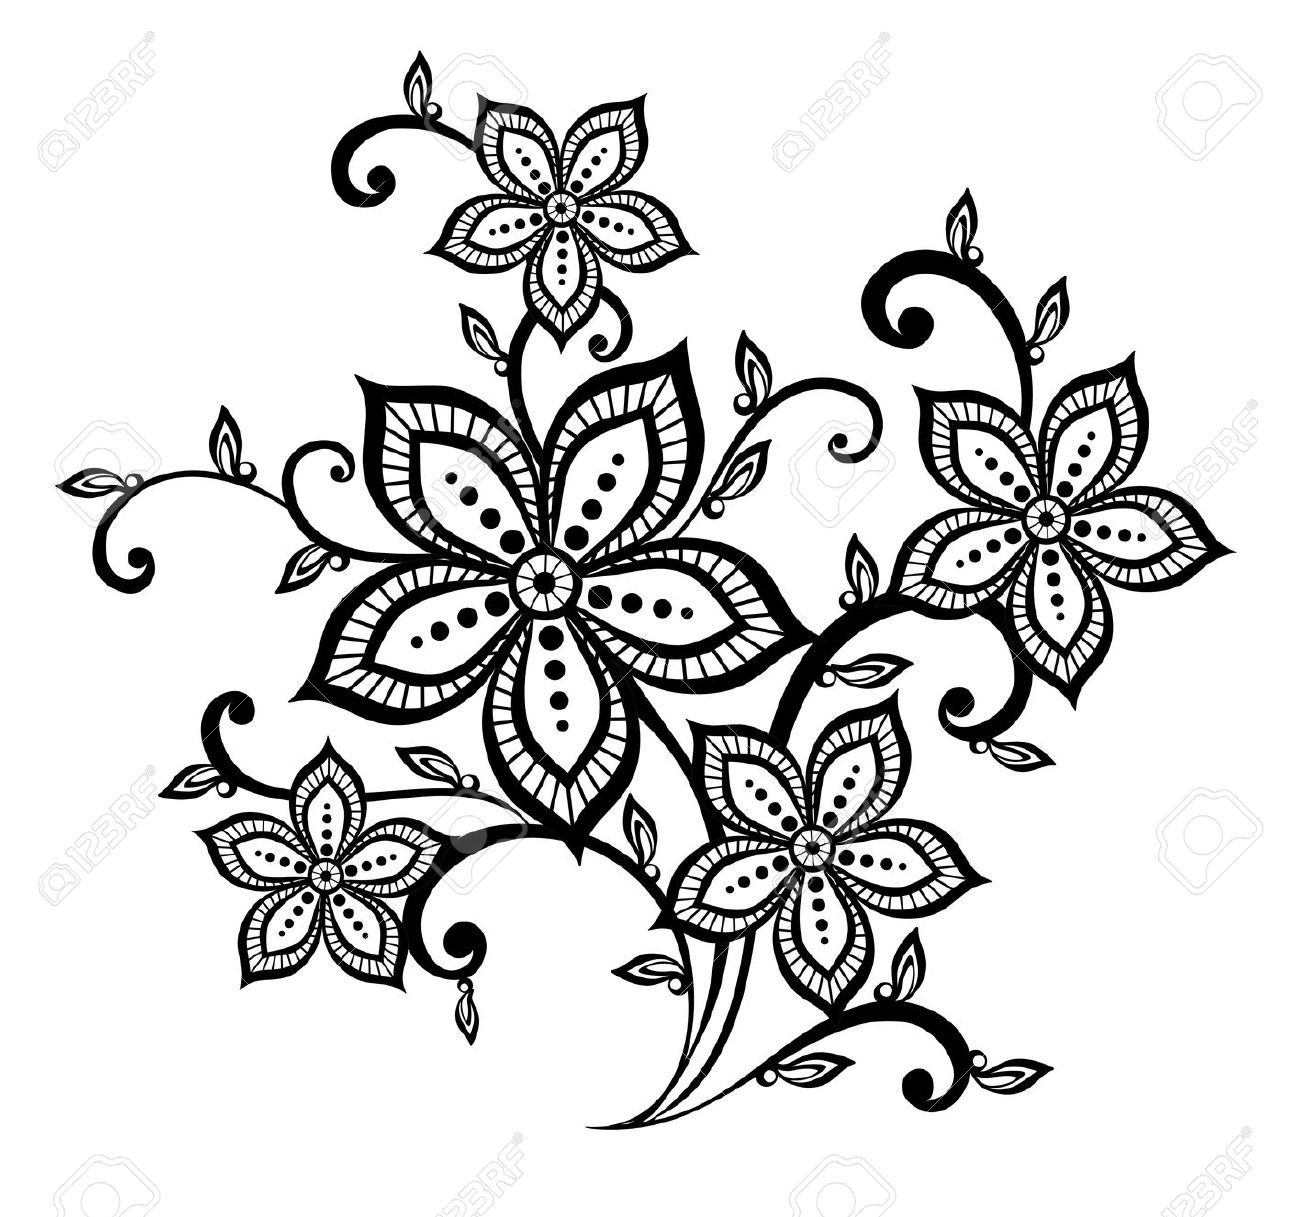 Set Of Black Flower Design Elements Royalty Free Stock: Beautiful Black And White Floral Pattern Design Element